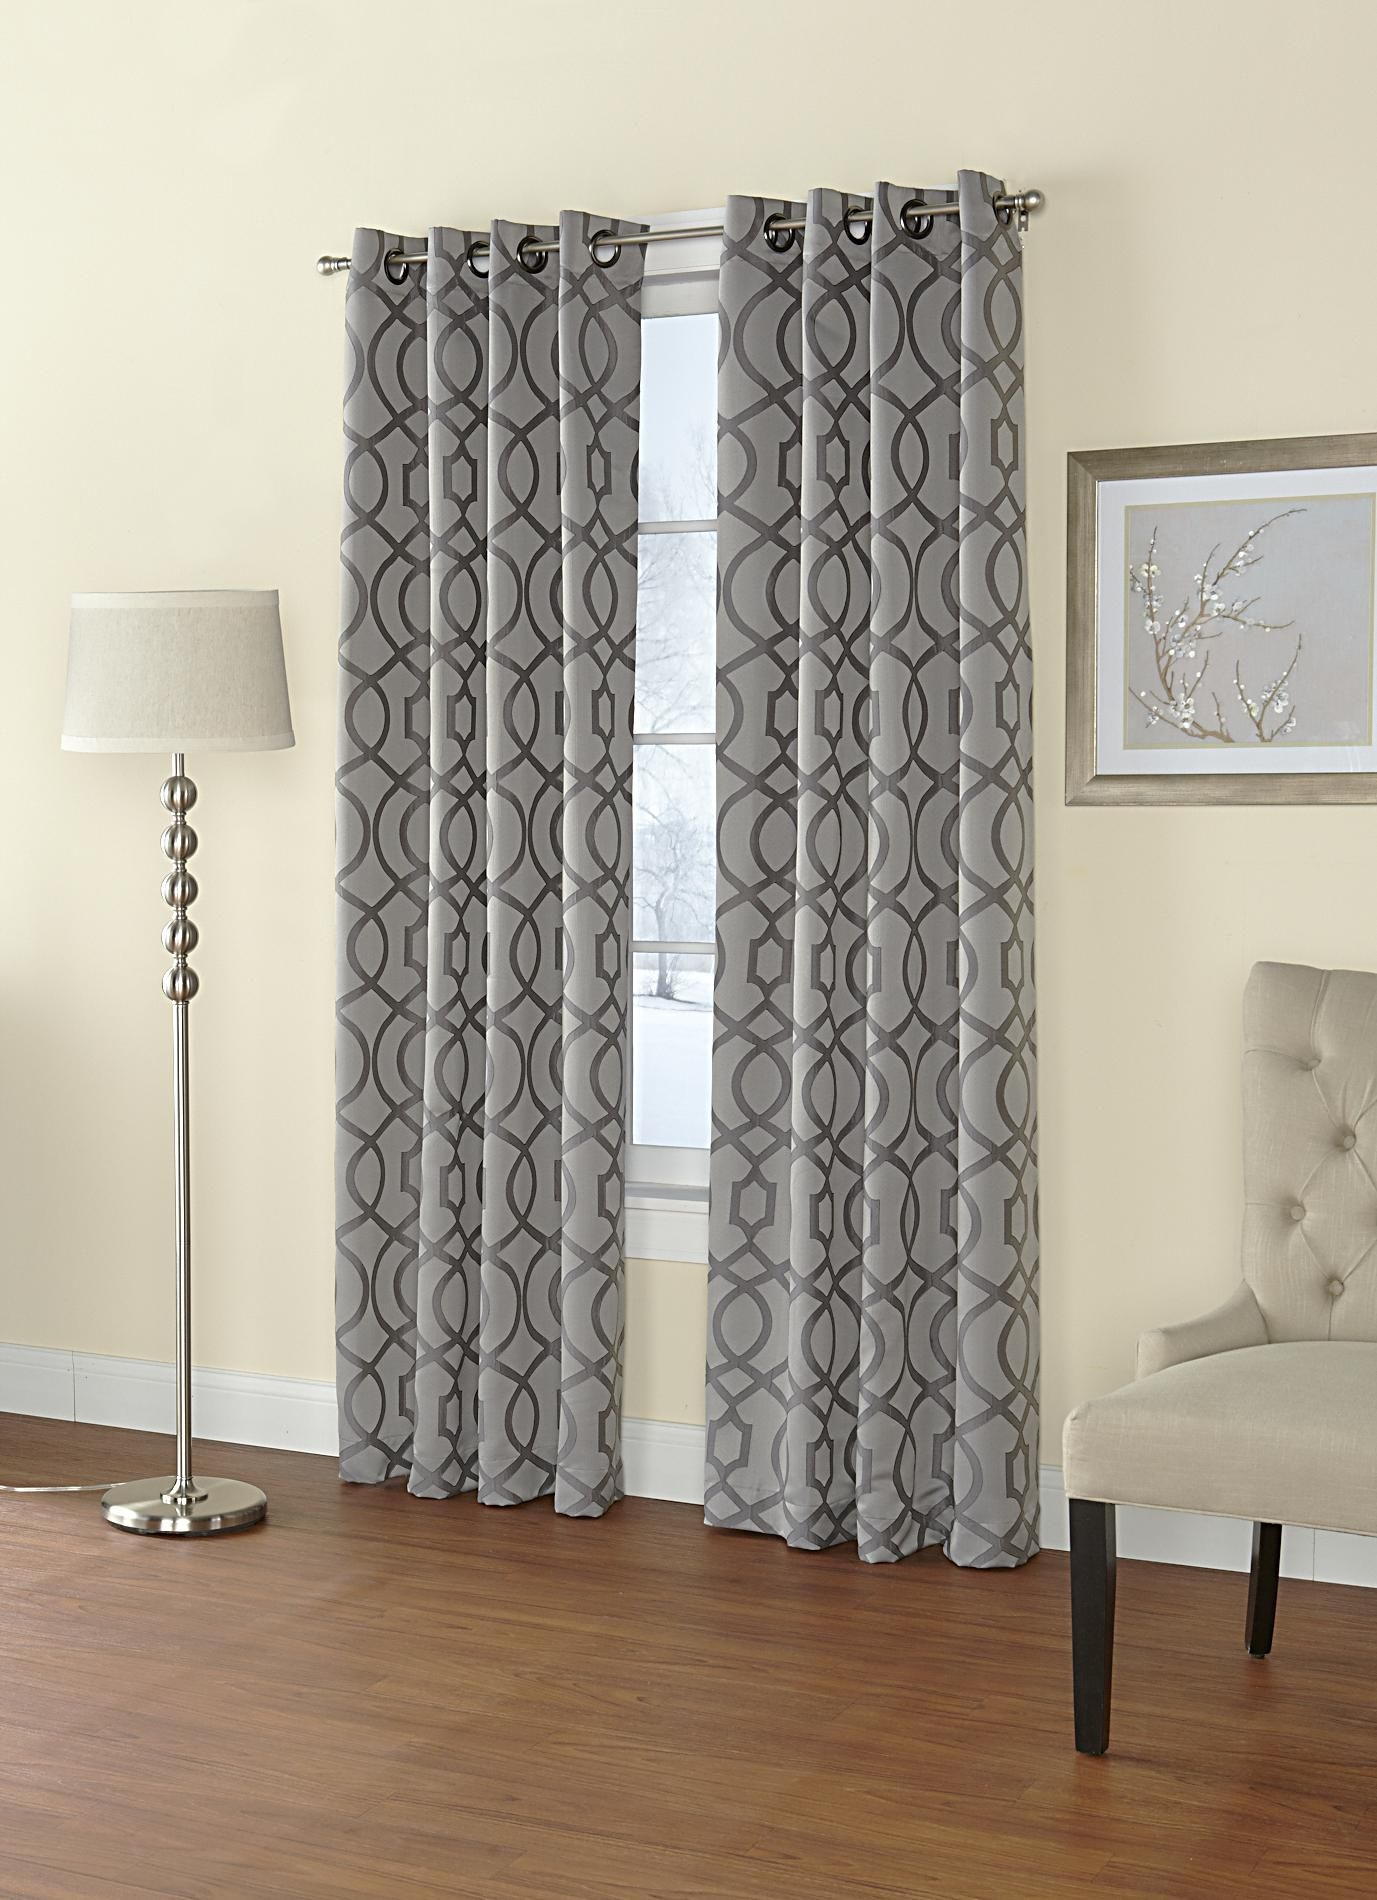 Decor Silver Blackout Curtain Kmart Curtains For Home Pertaining To Pattern Curtain Panels (Image 8 of 25)